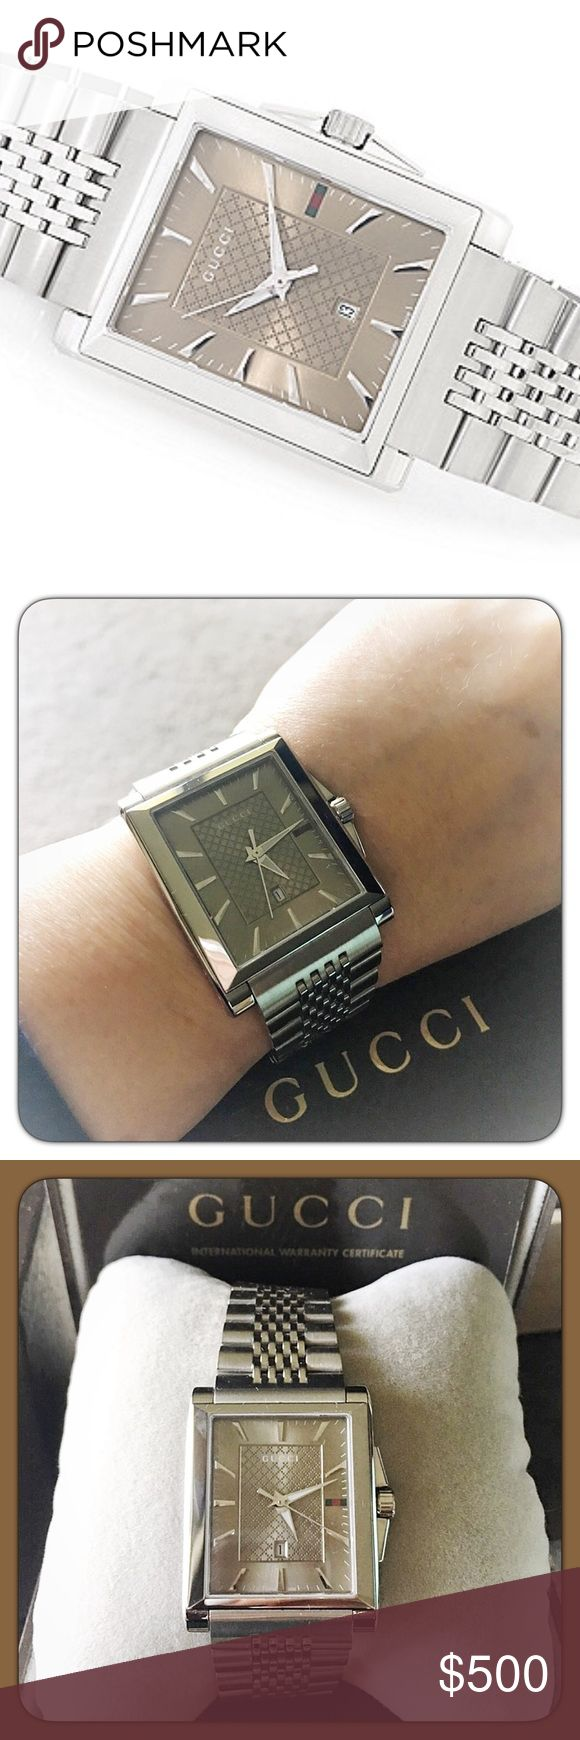 """Gucci Rectangular G-Timeless Swiss Watch Authentic Gucci G-Timeless Rectangular Swiss Made Watch with Sun brushed brown dial. Date window. 33mm L x32mm W case with sapphire crystal. Stainless steel bracelet 7 1/2"""" L and 26mm W. Dual deployment clasp. Made in Switzerland. The watch is gorgeous and in """"Like New"""" condition. Worn a few times. Has been sized to fit a 6 1/2"""" wrist but have extra links and all original packaging. $750 NEW Gucci Accessories Watches"""